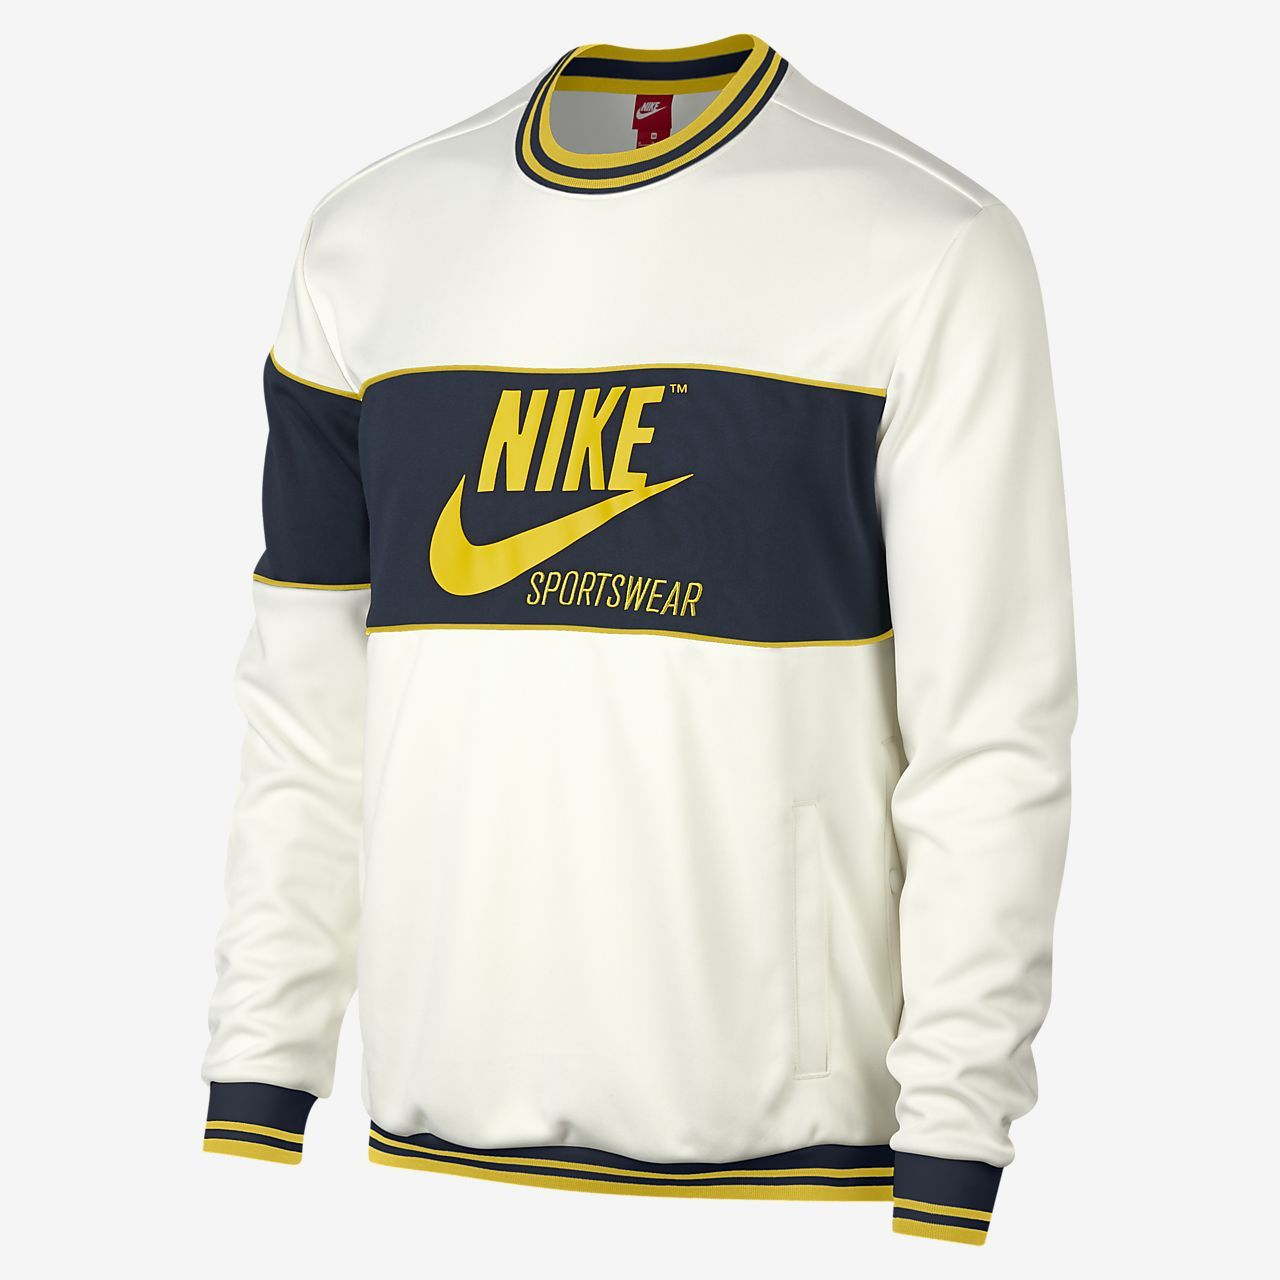 Nike Sportswear Archive Sudadera Hombre | Nike ropa hombre